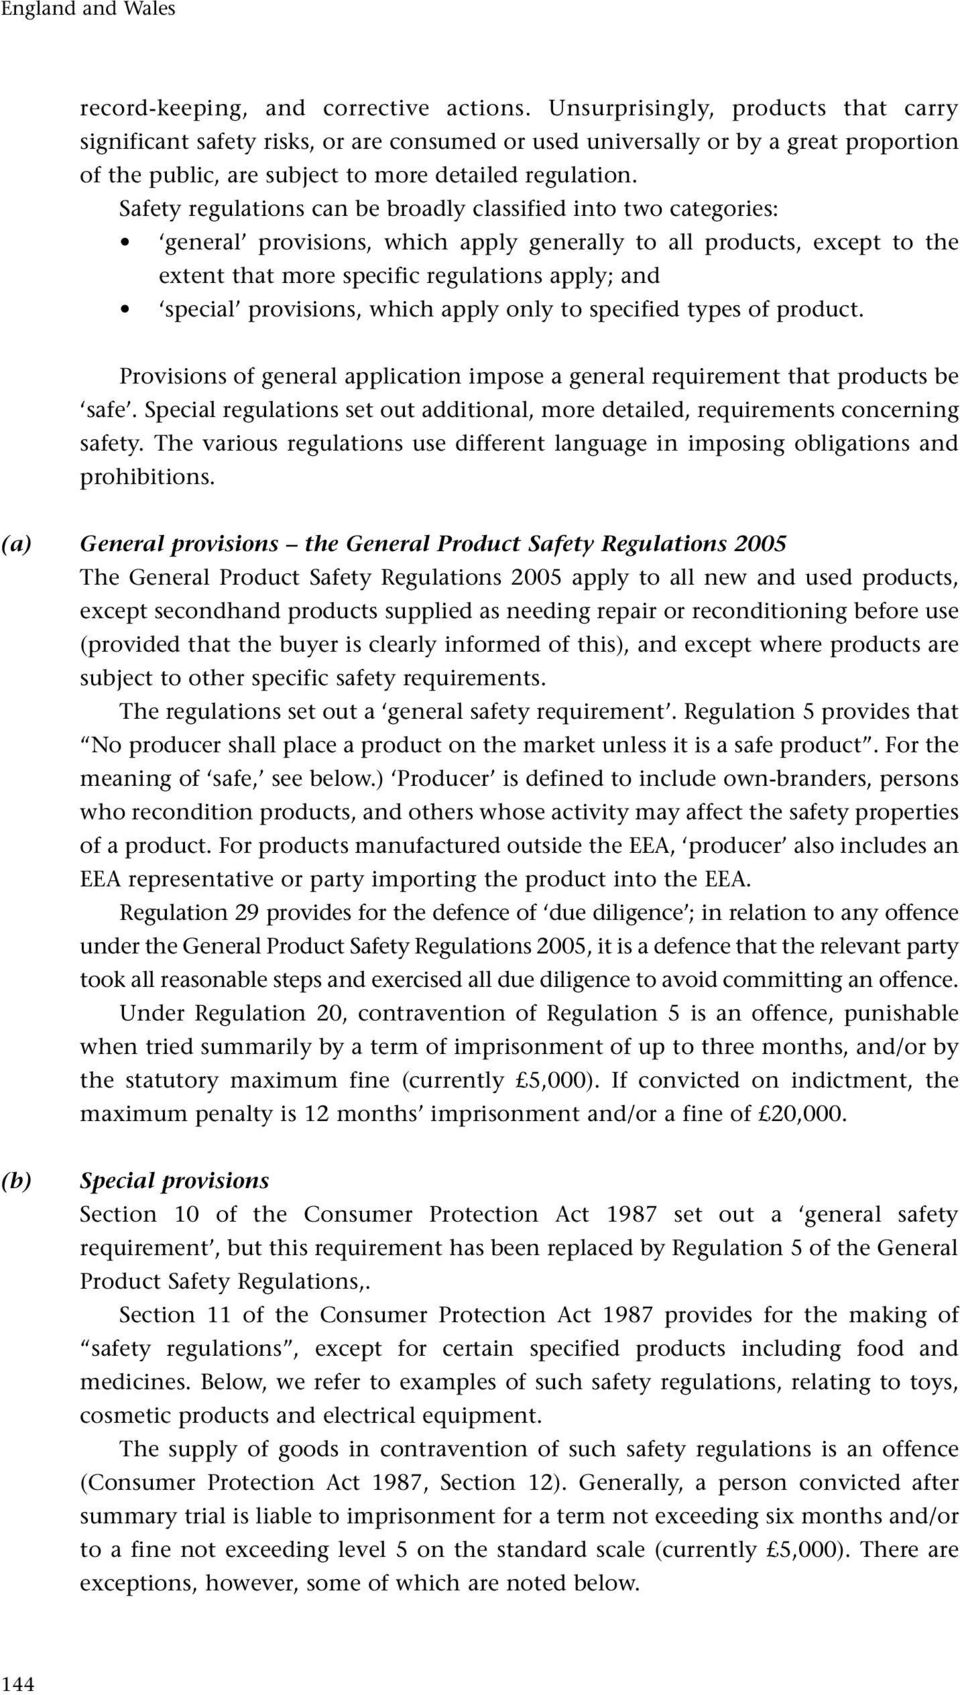 Safety regulations can be broadly classified into two categories: general provisions, which apply generally to all products, except to the extent that more specific regulations apply; and special